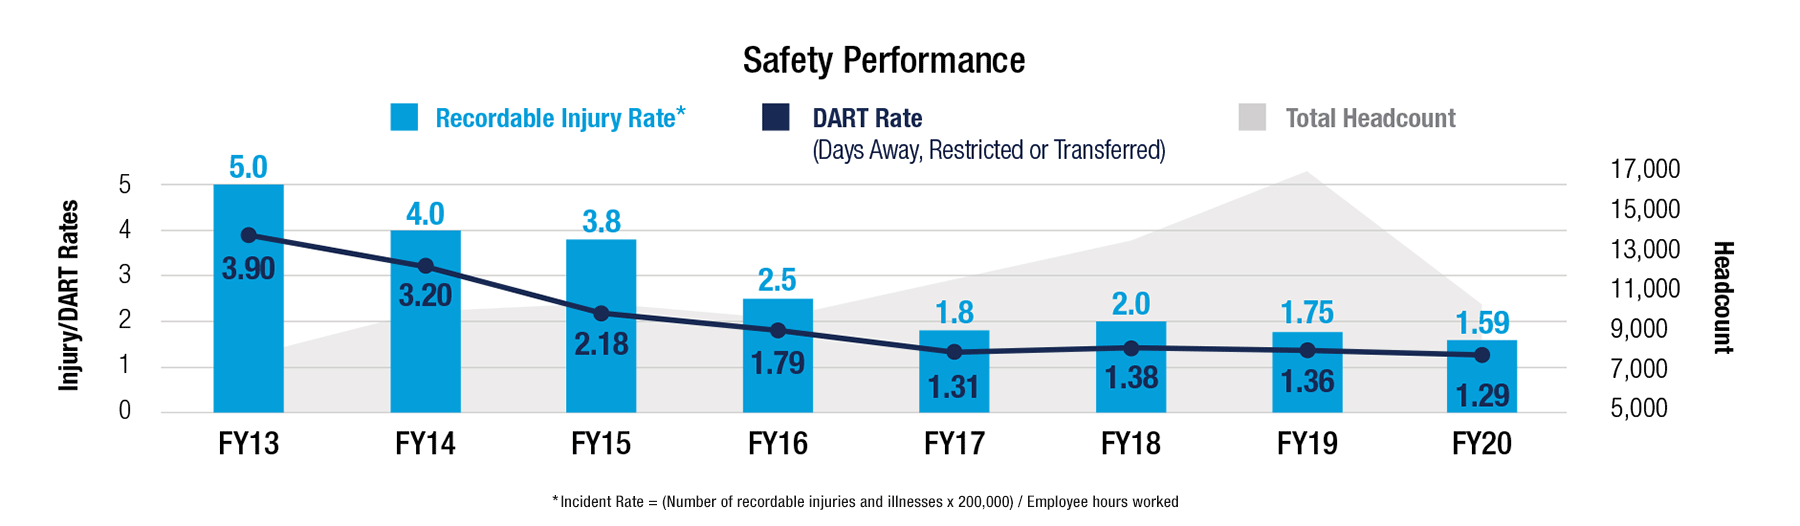 Safety Performance graph